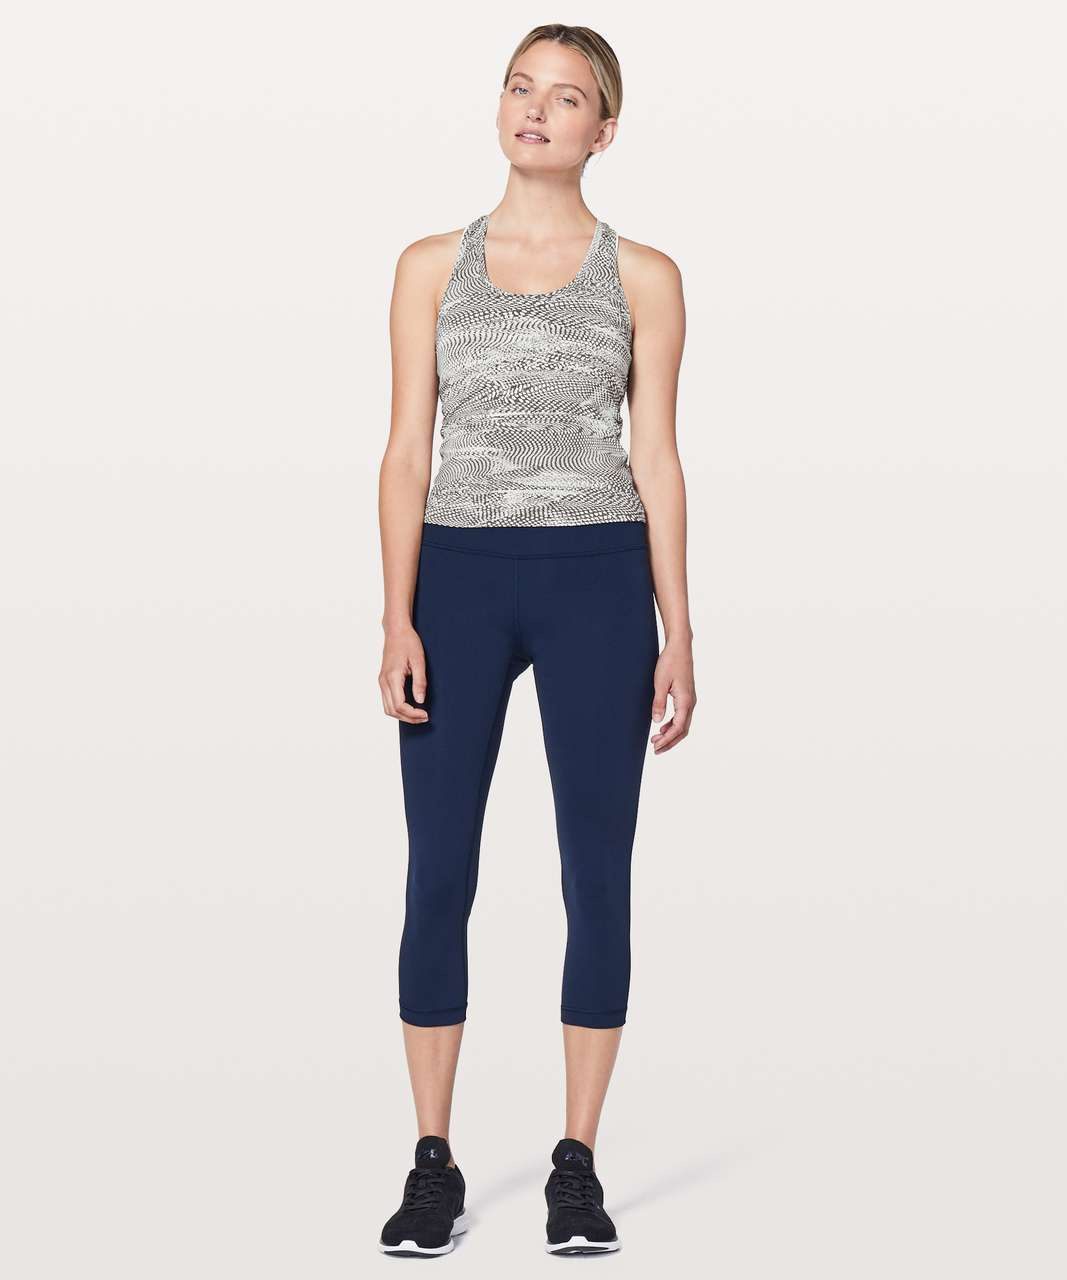 Lululemon Cool Racerback II *Race Length - Swerve Vapor Metal Grey